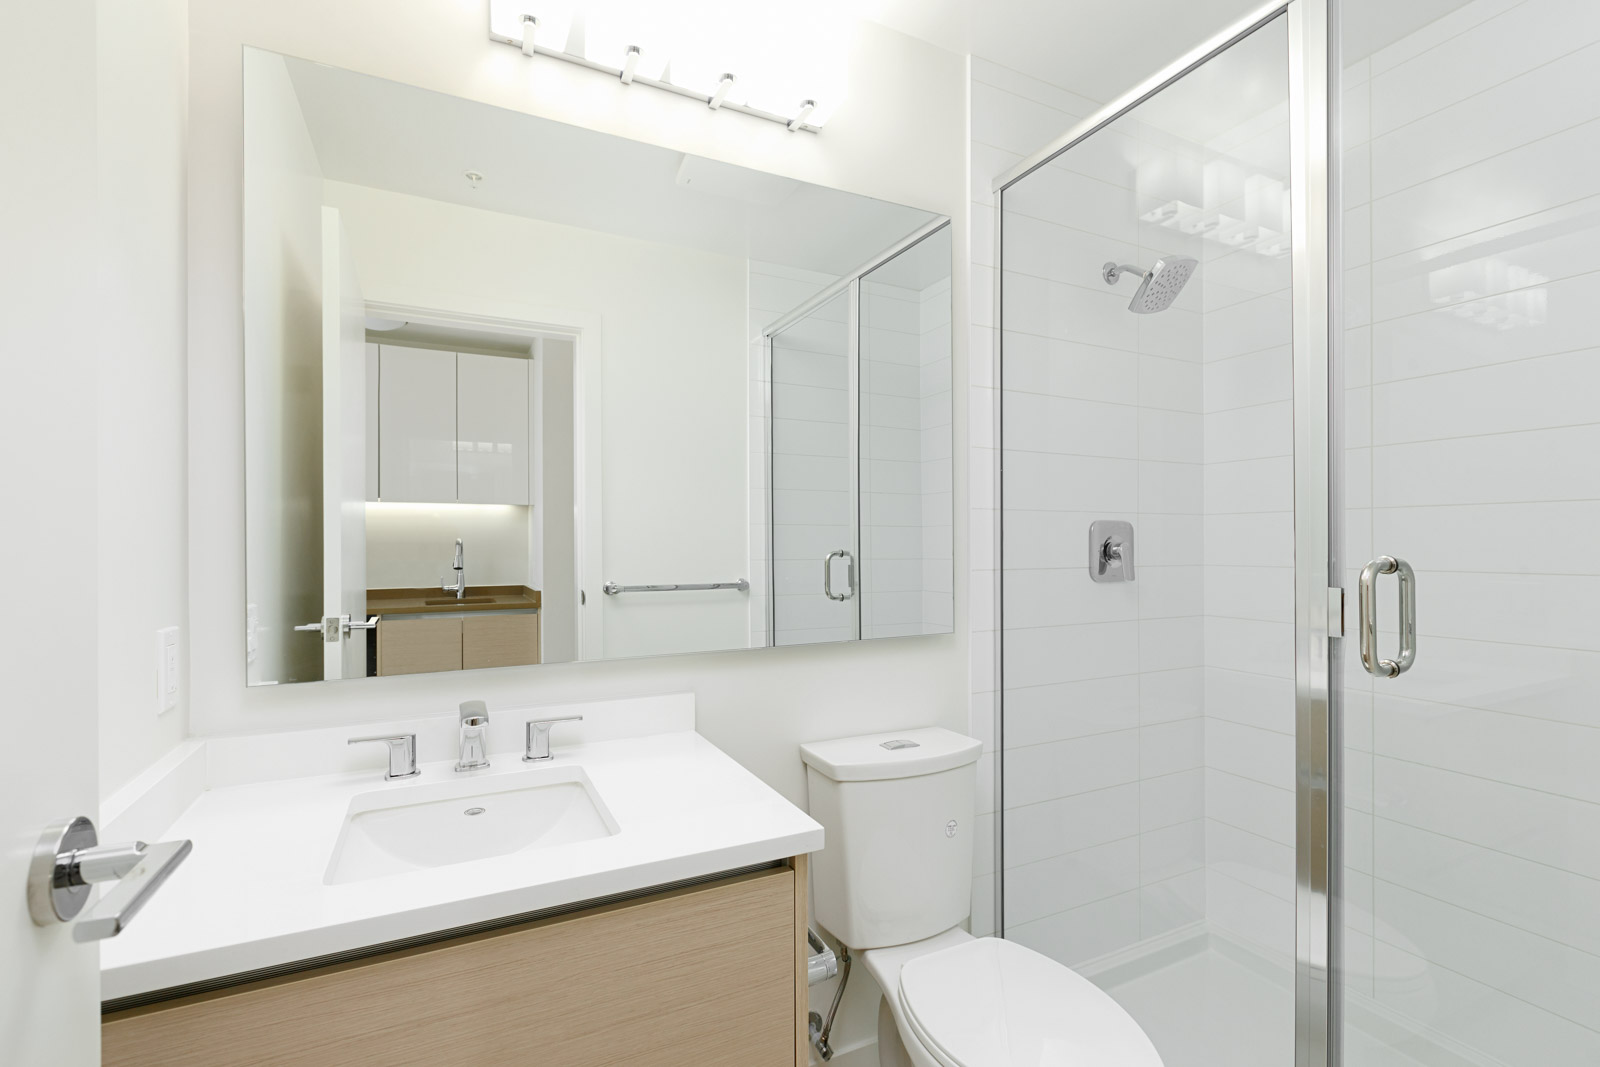 Newly built bathroom at Burnaby Mountain rental condo.